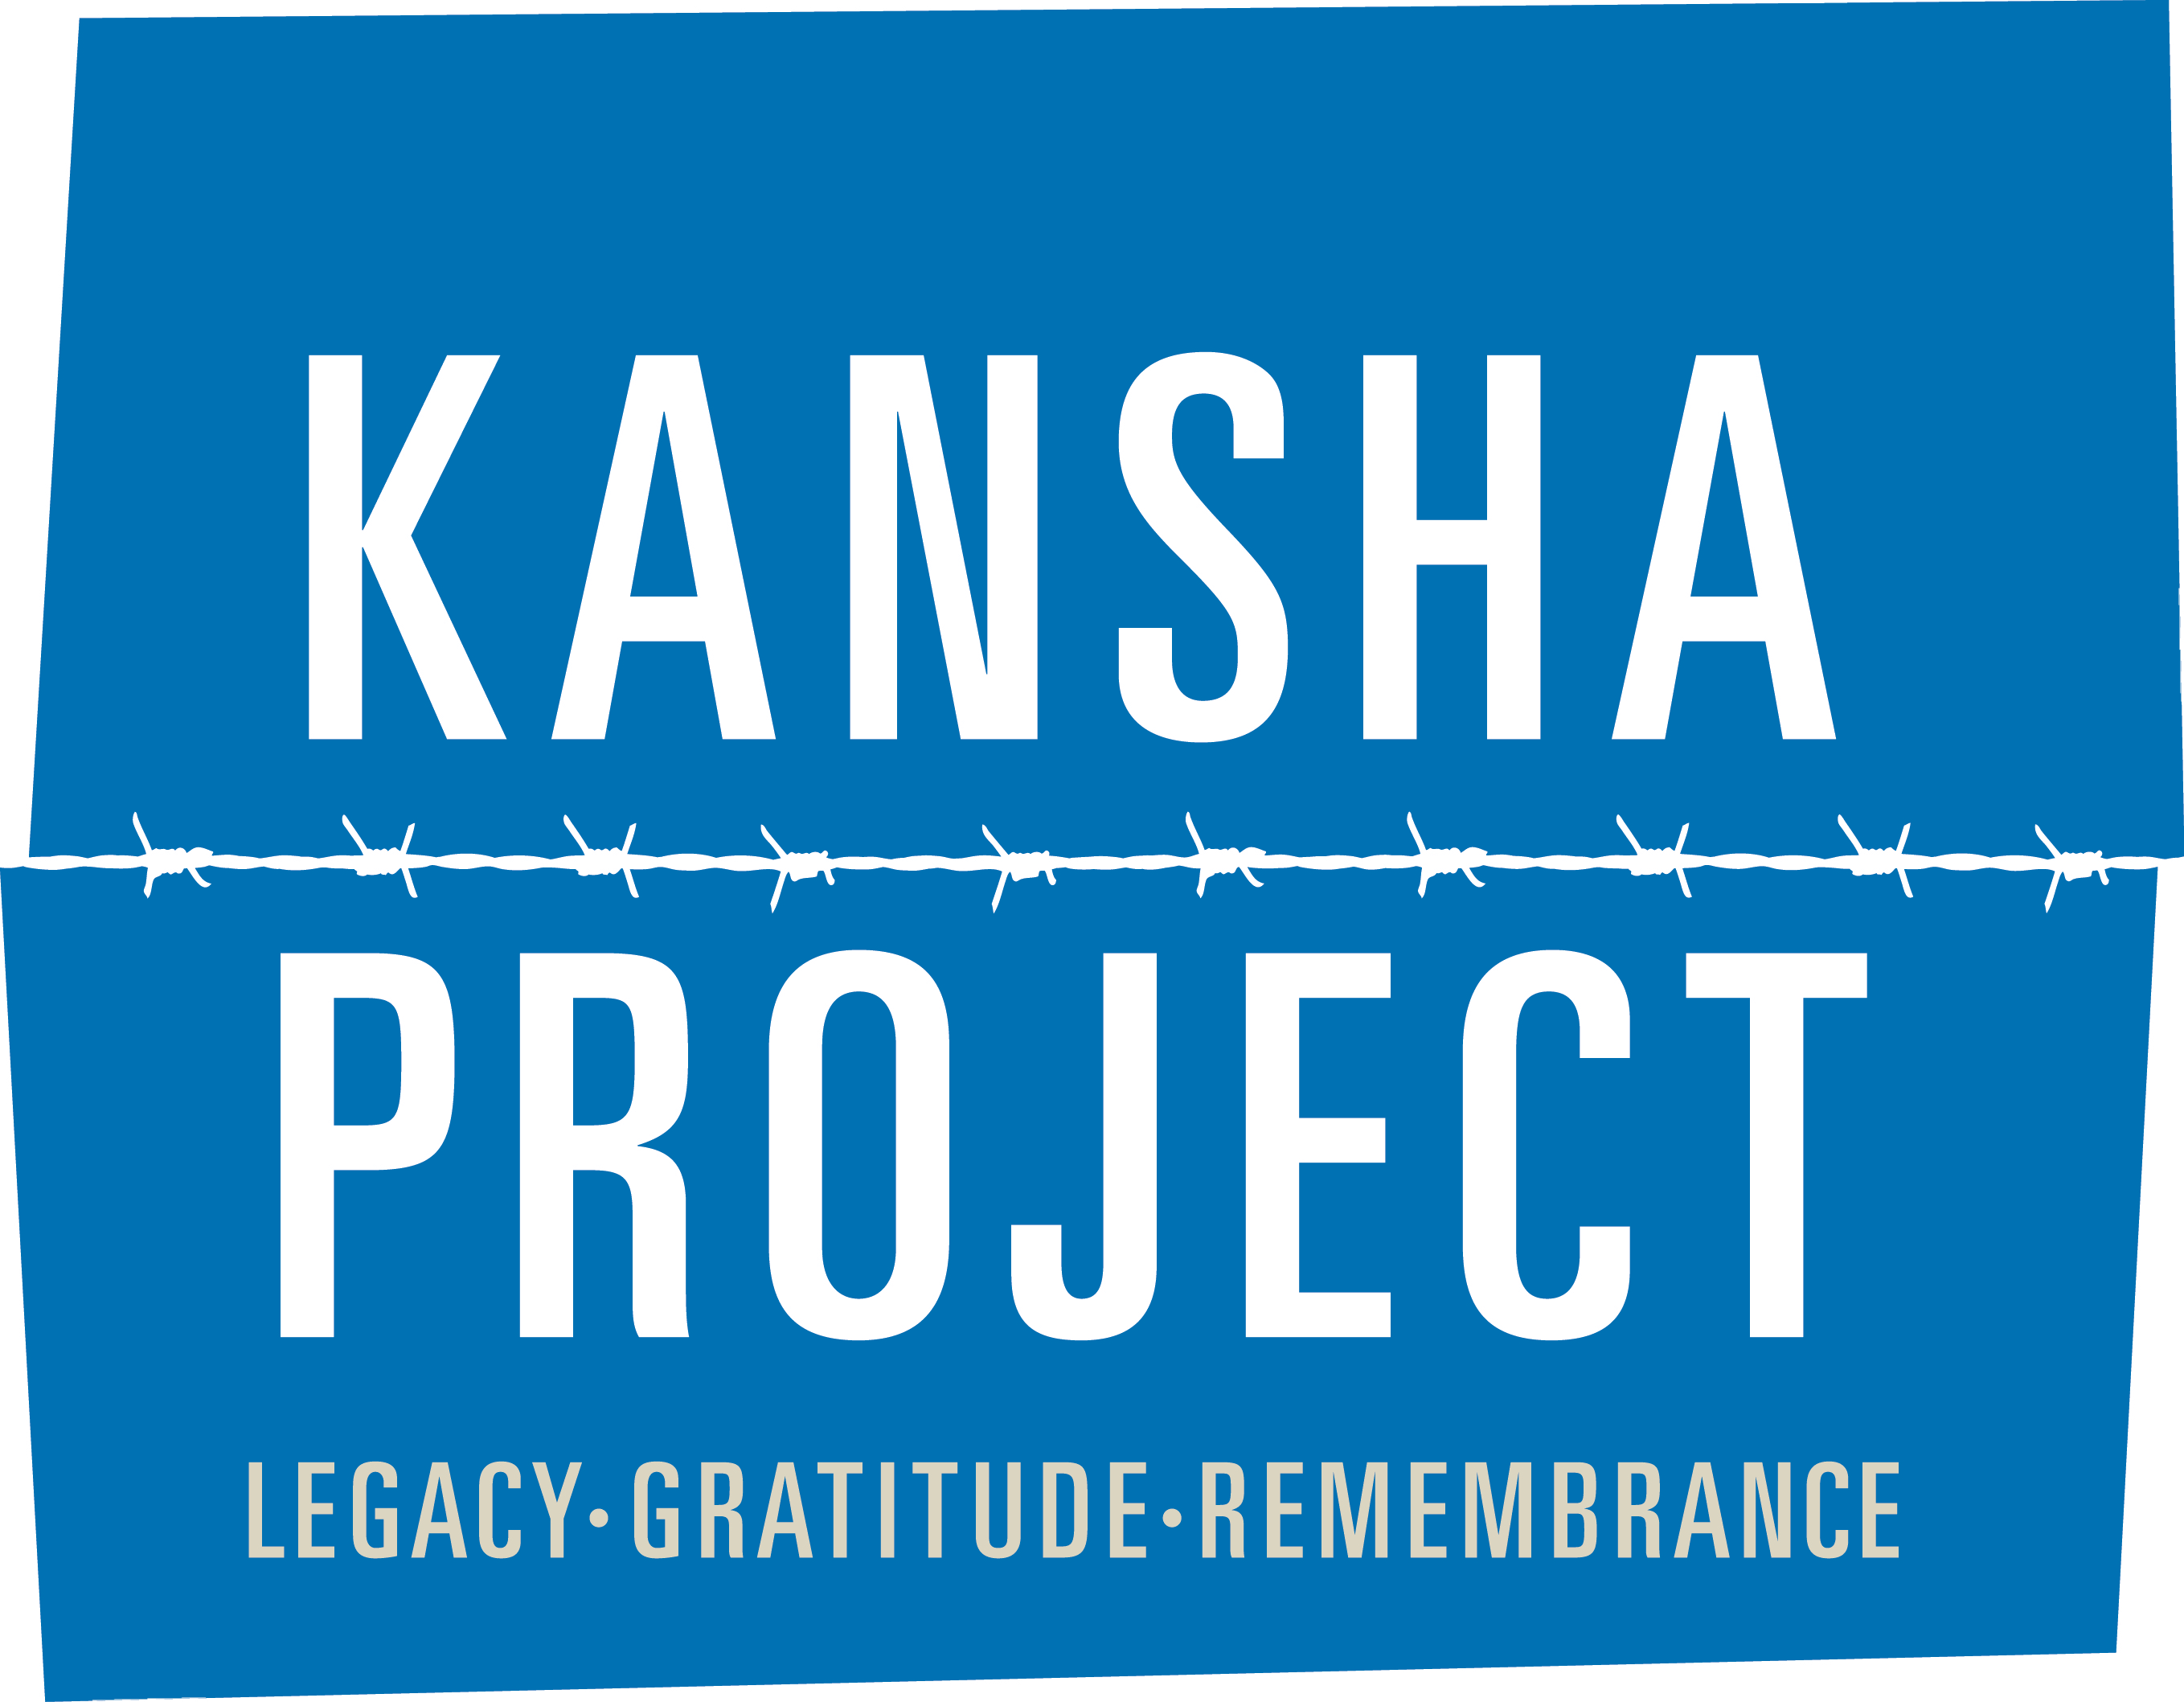 kansha-project-big-final-tansparent-background-1